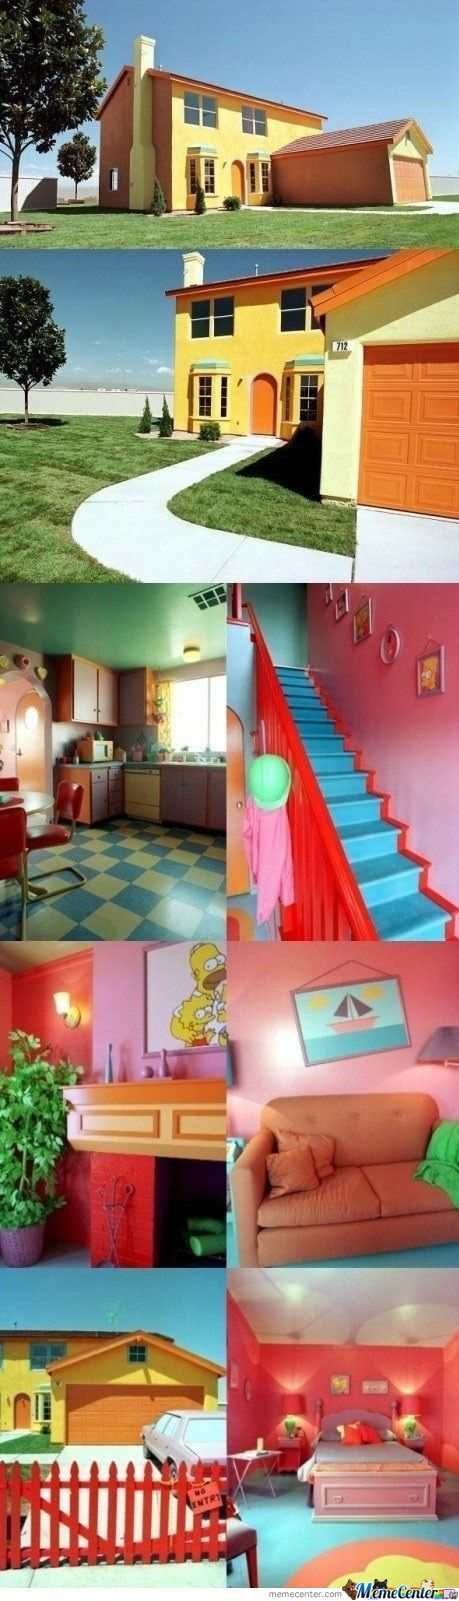 Real Life 'the Simpsons' House!